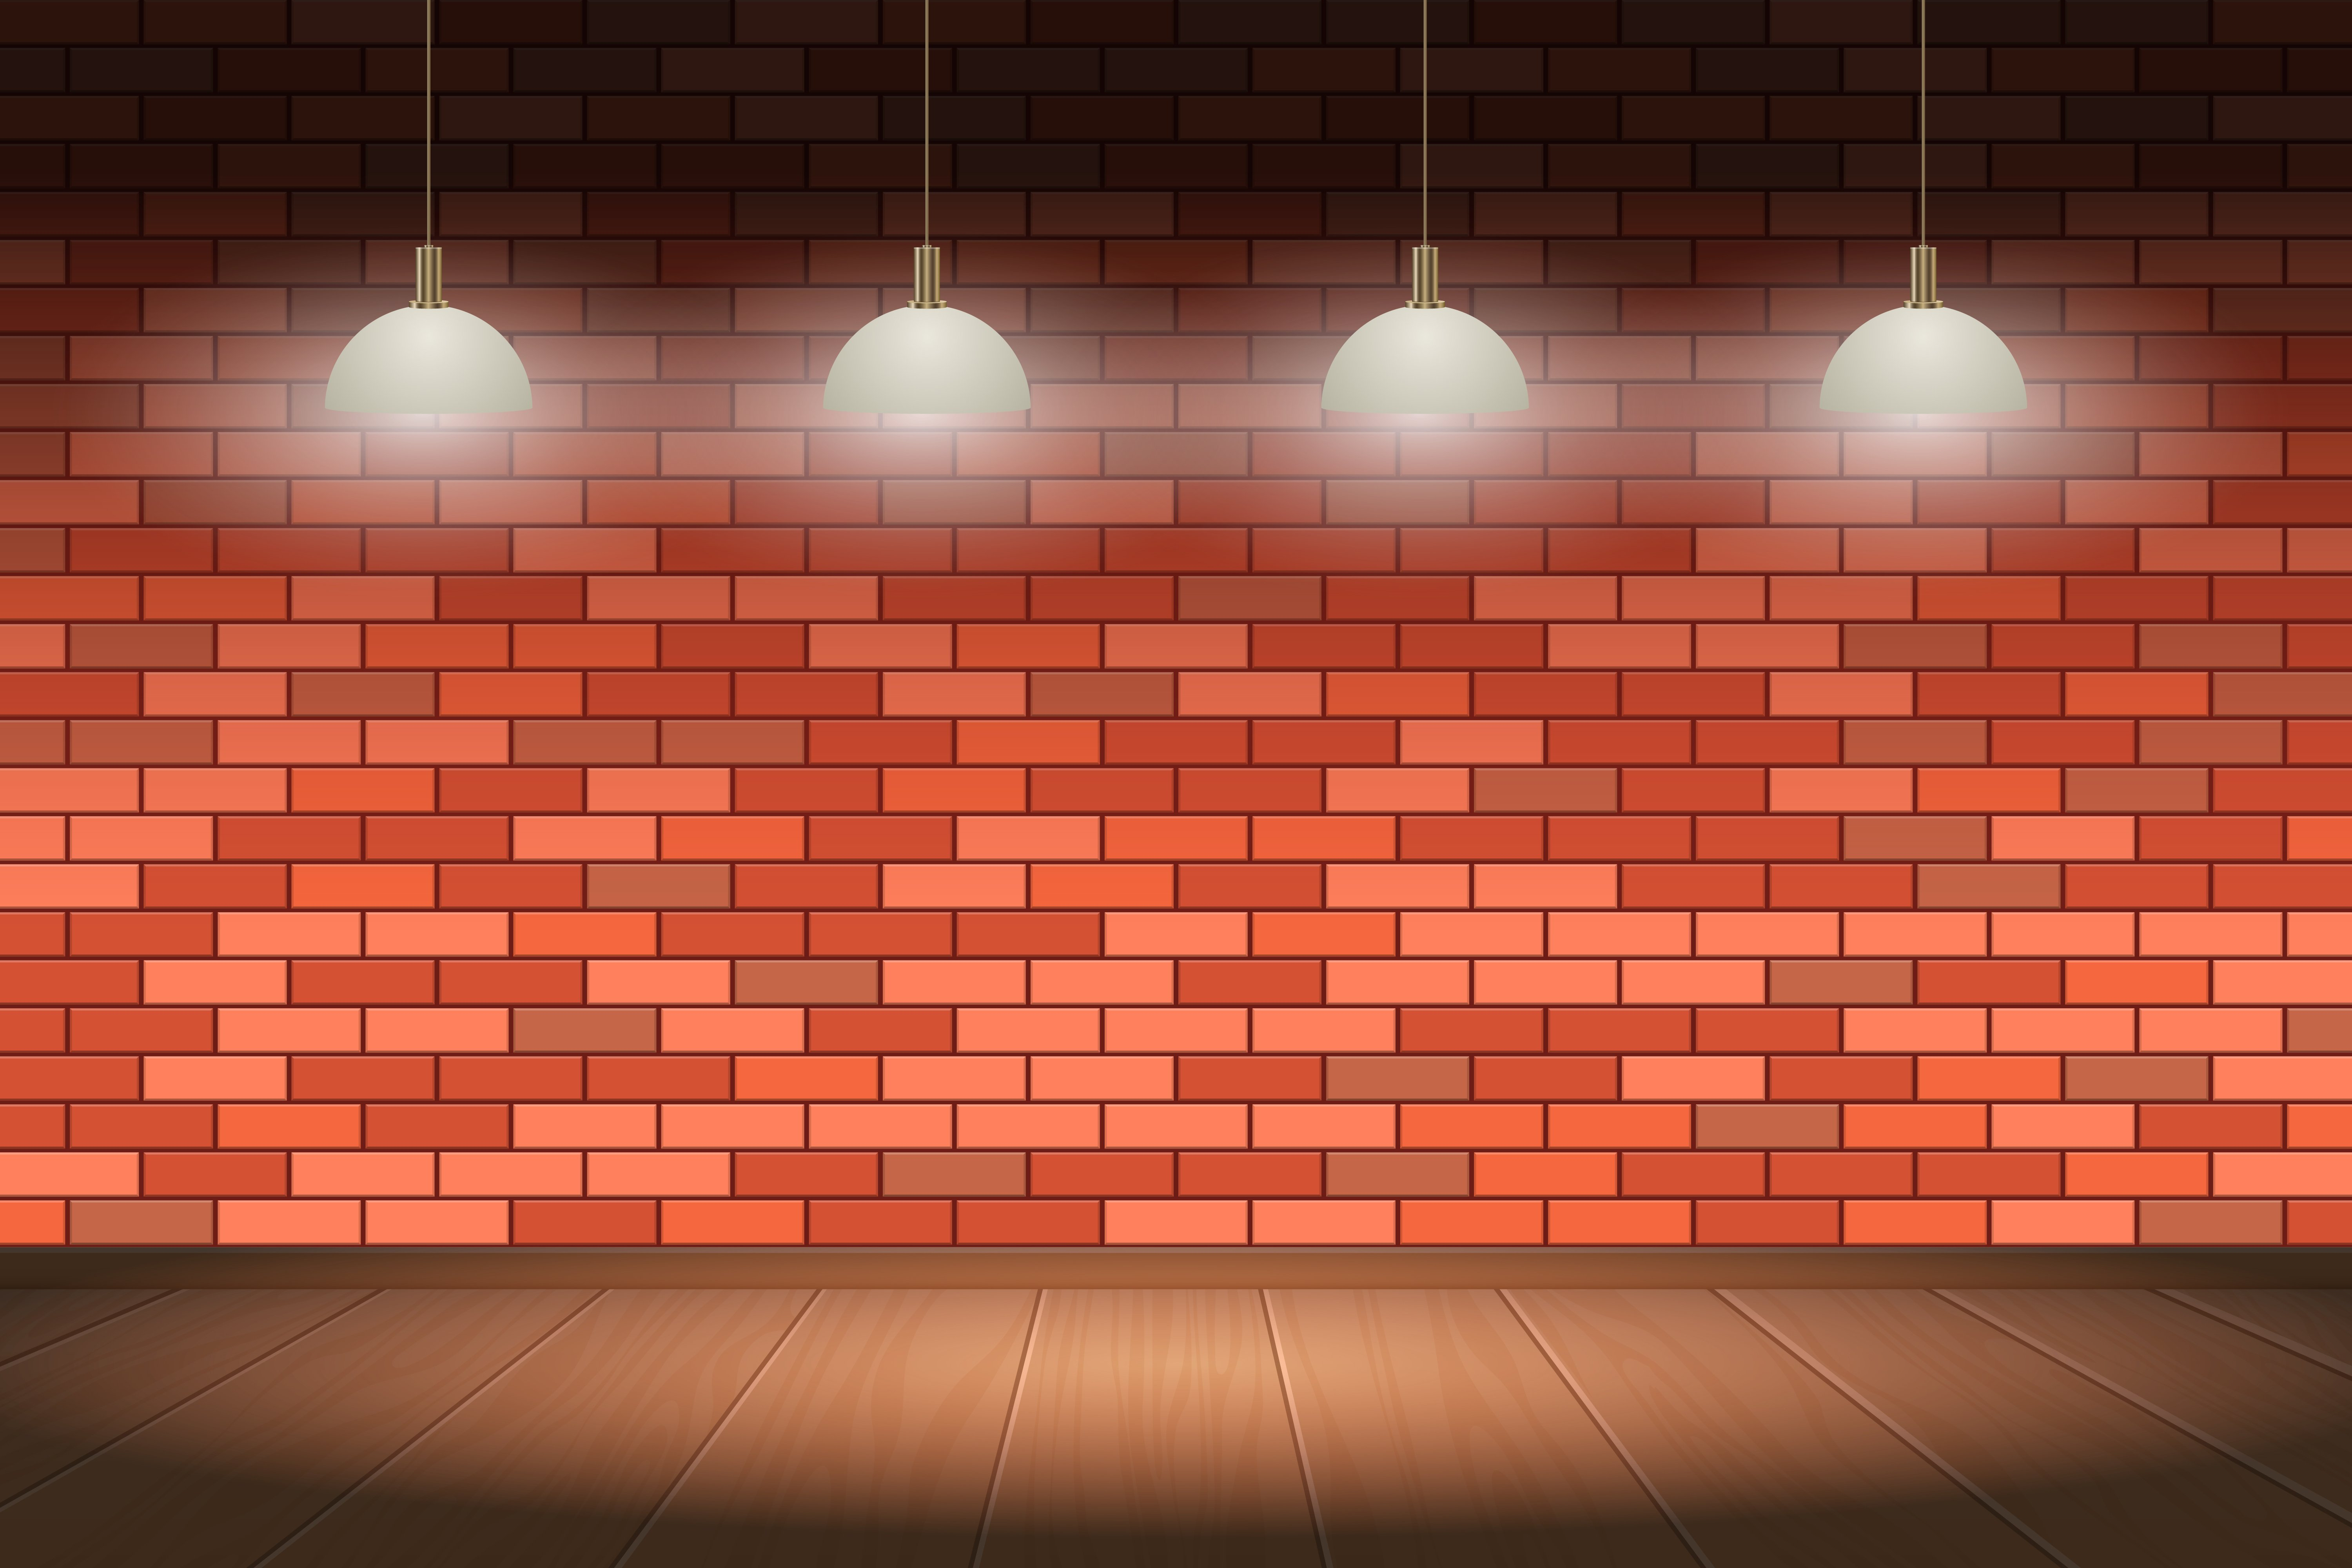 Brick wall and wooden floor background vector design illustration 6000x4000